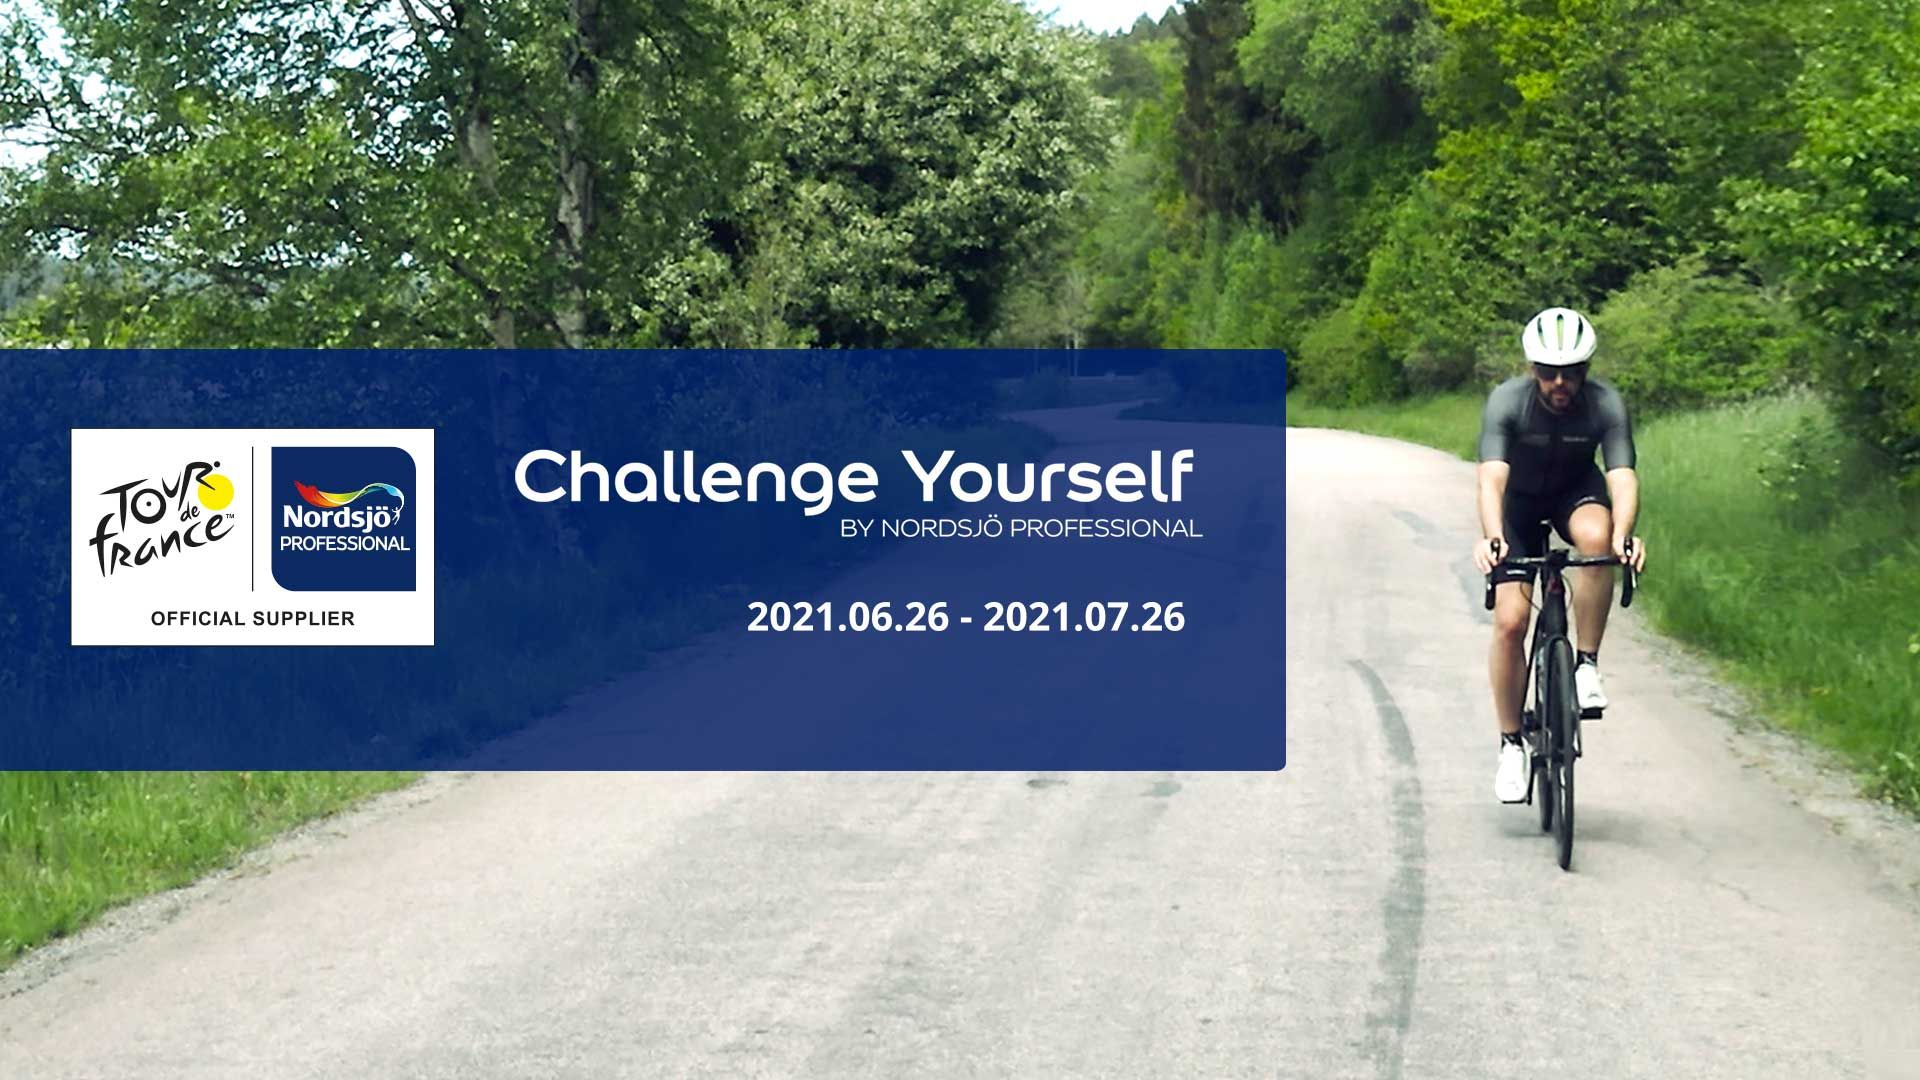 Challenge yourself by Nordsjö Professional 24/7